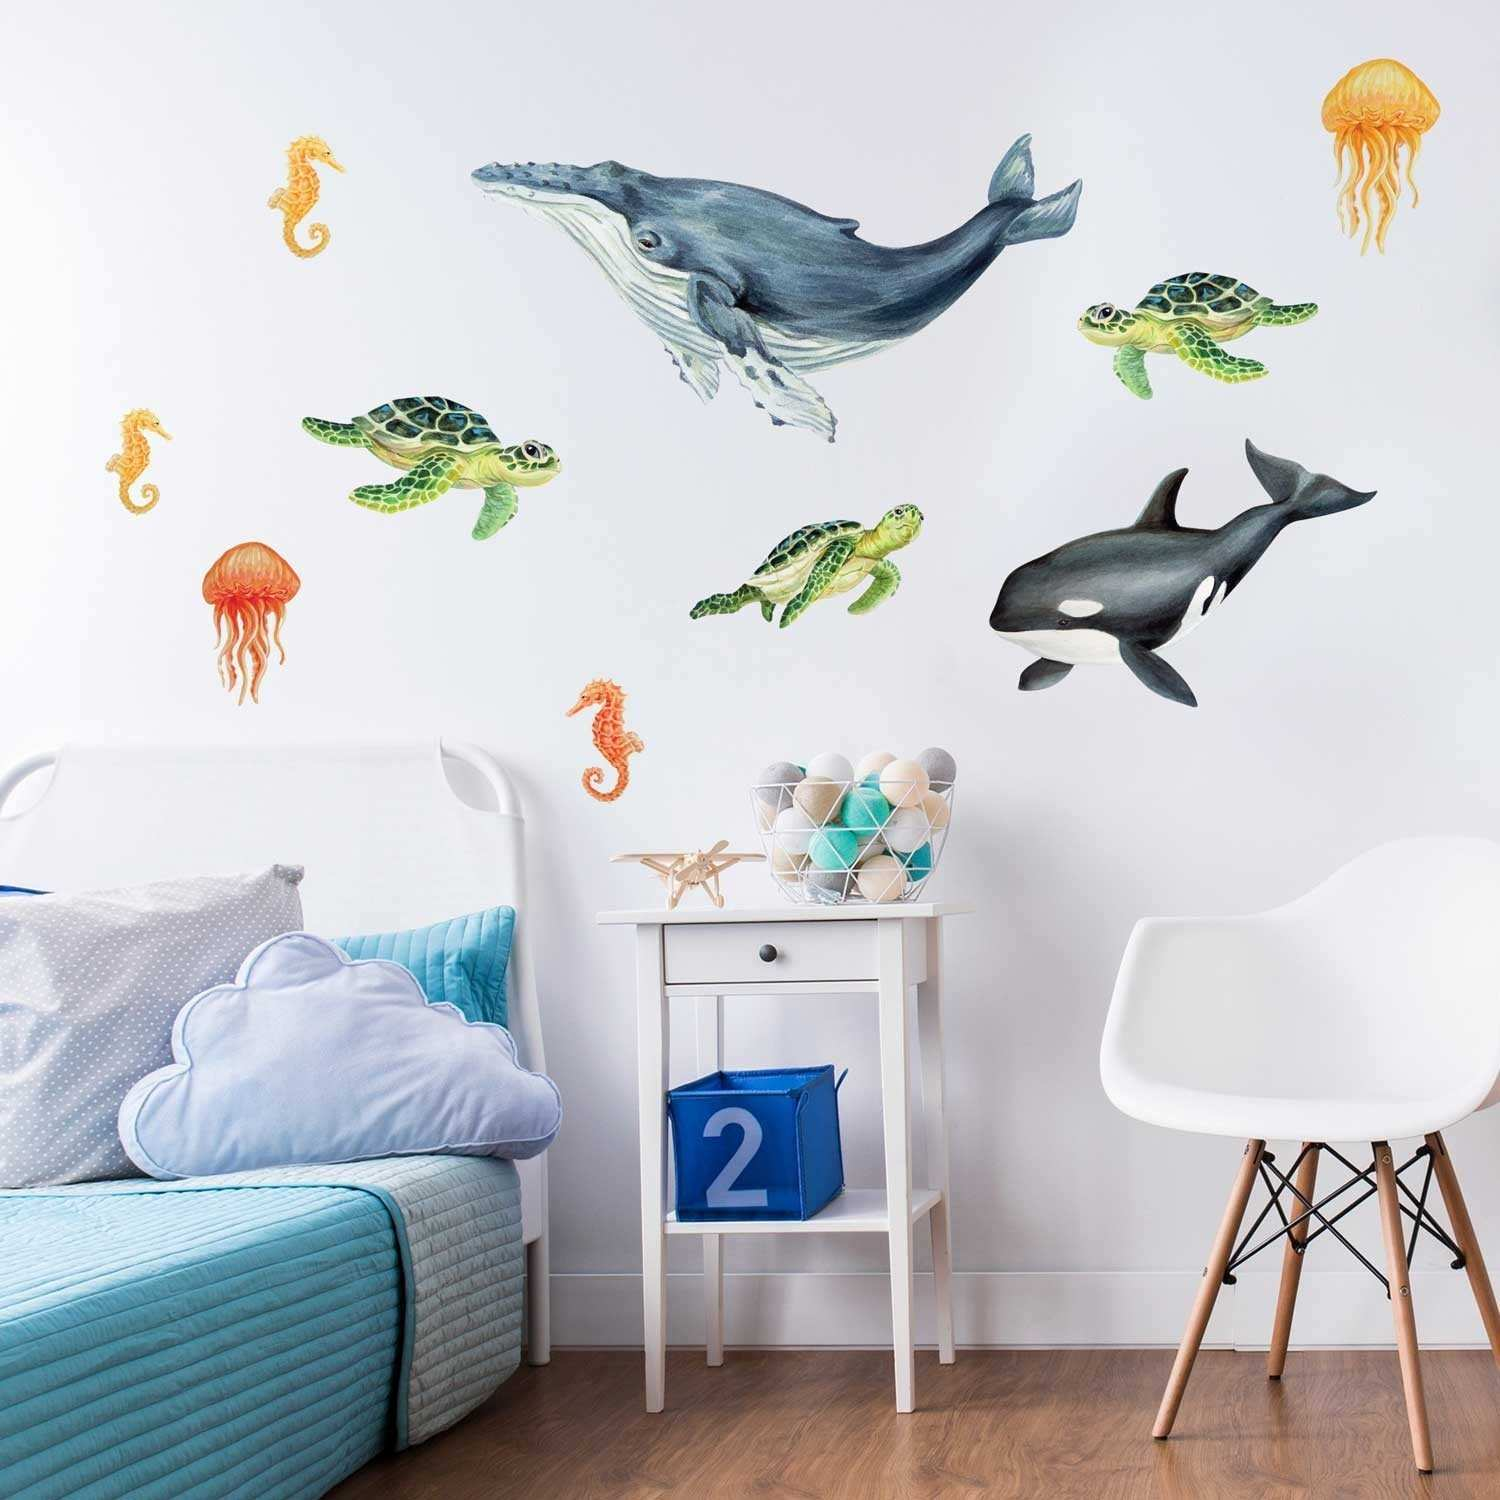 Decorative Mirrors for Walls Best Wall Decals for Bedroom Unique